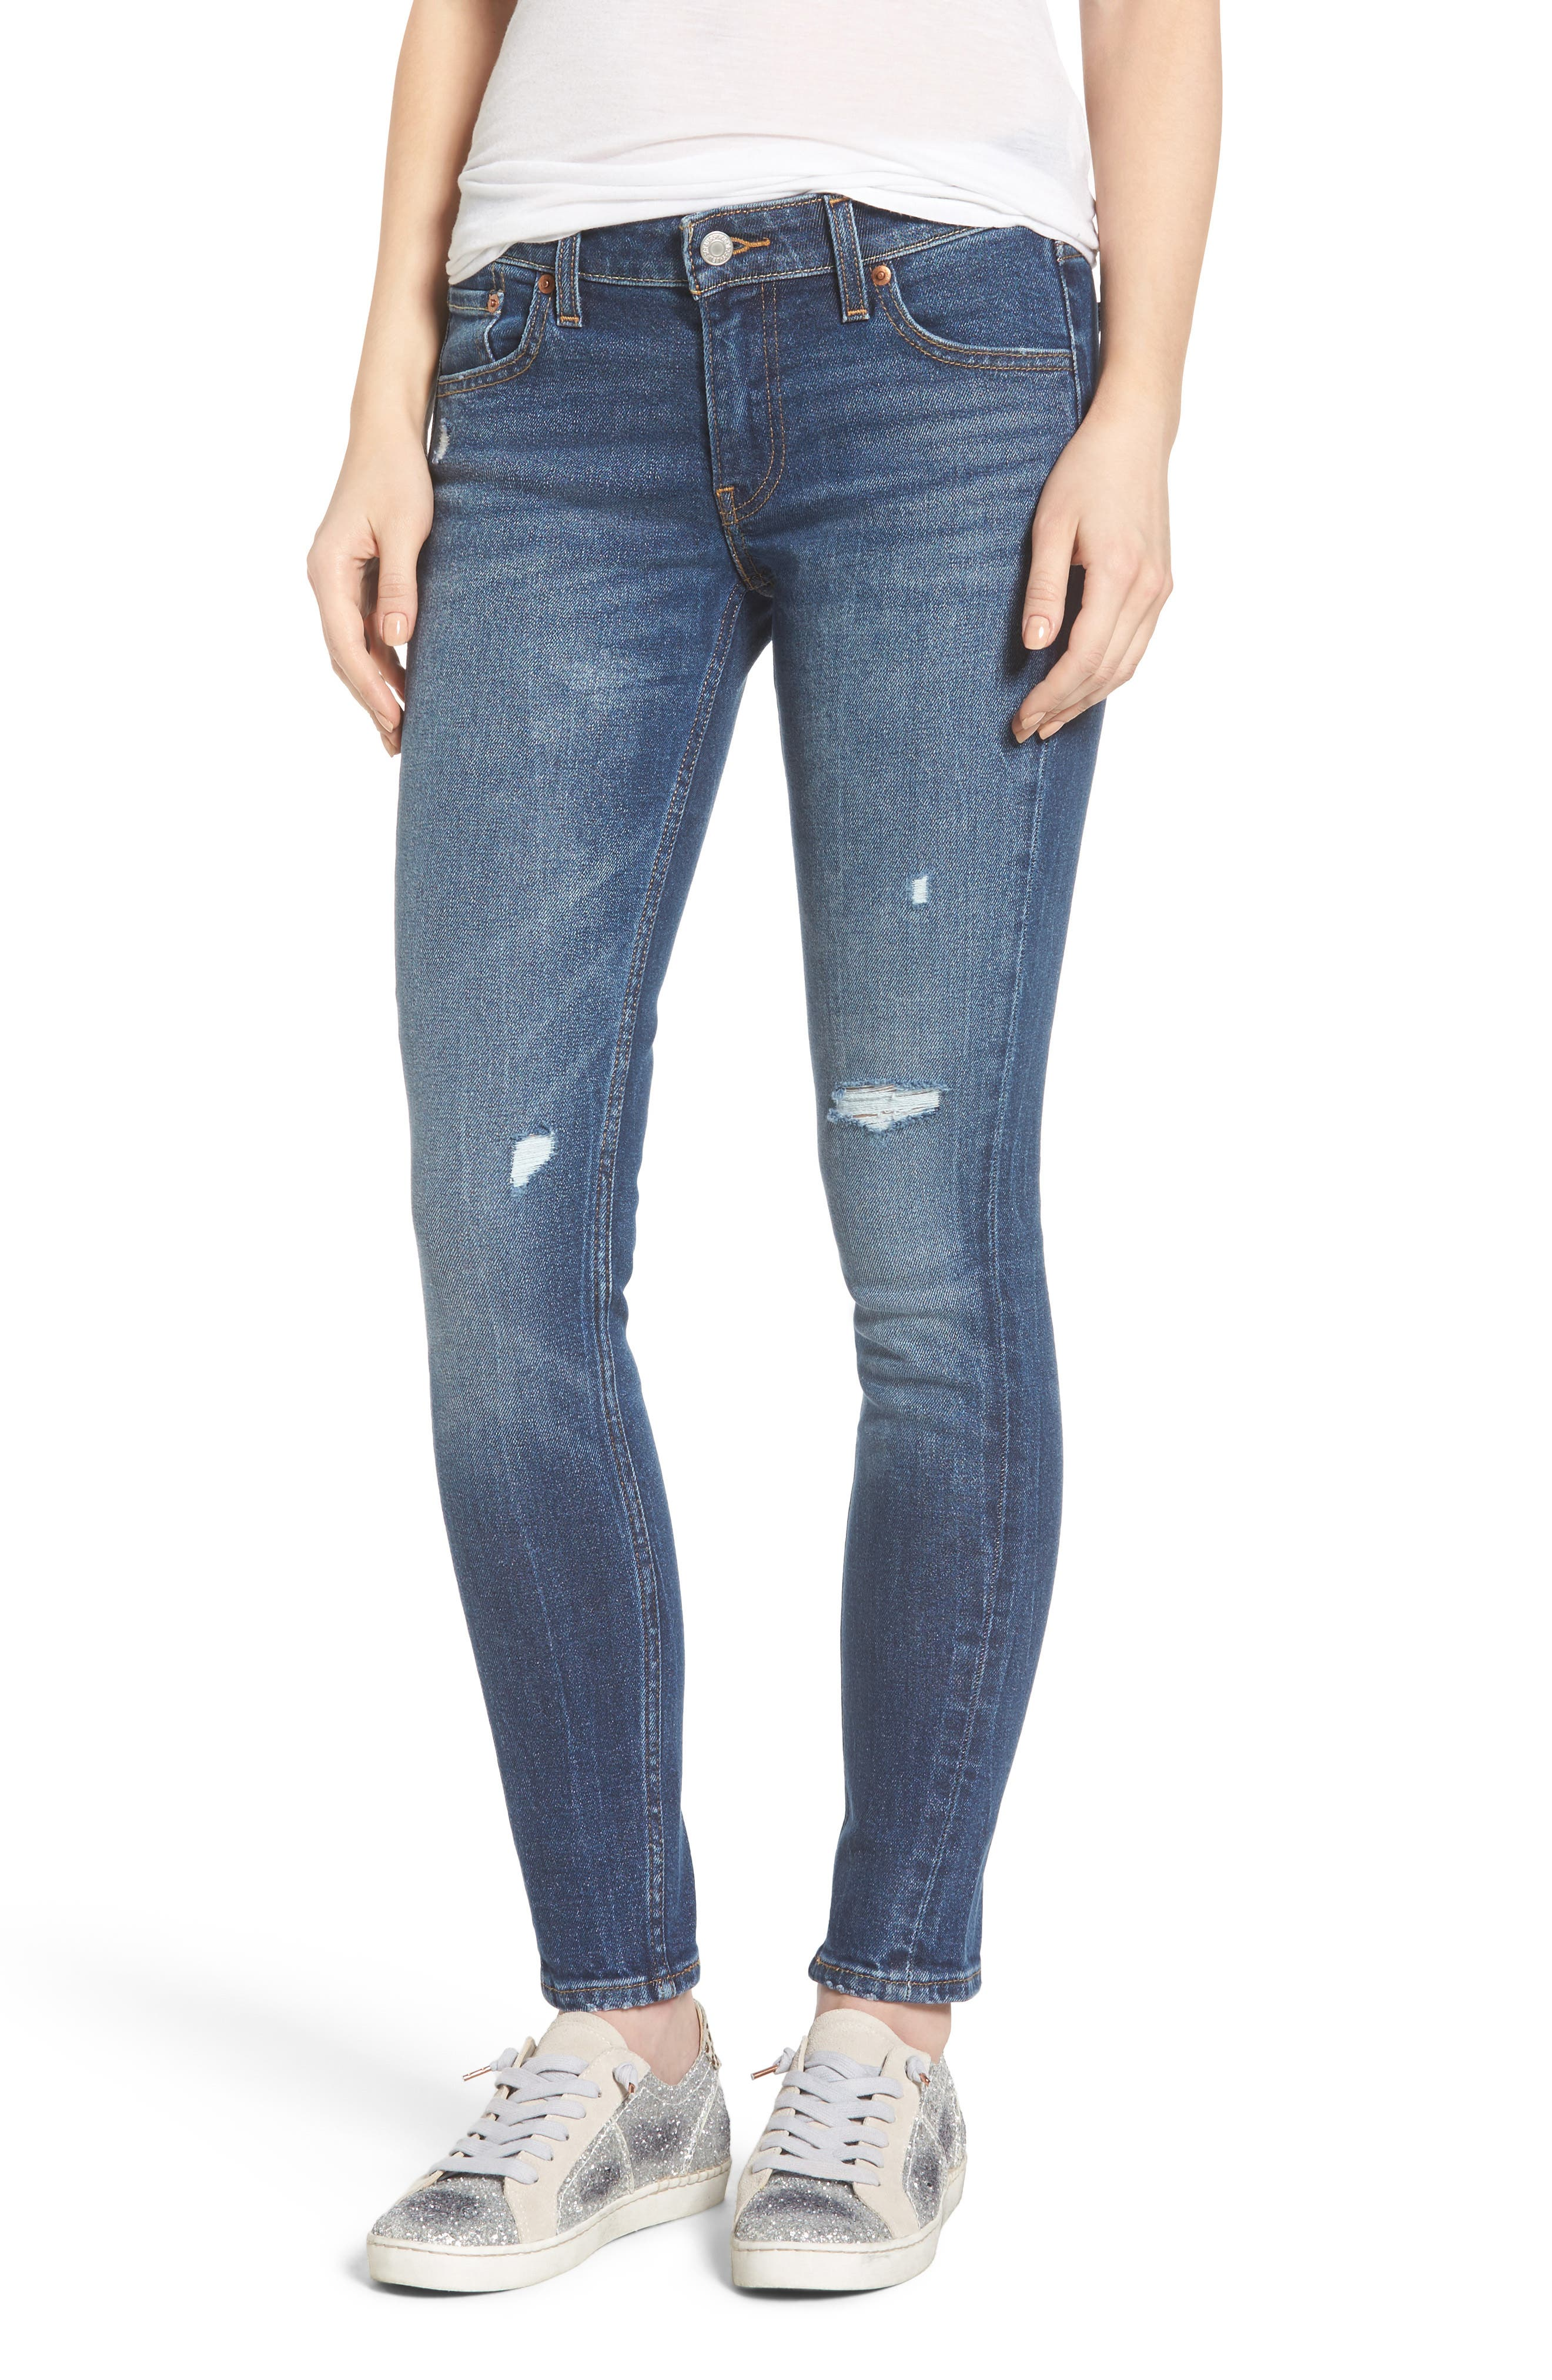 711 Ripped Skinny Jeans,                         Main,                         color, 421